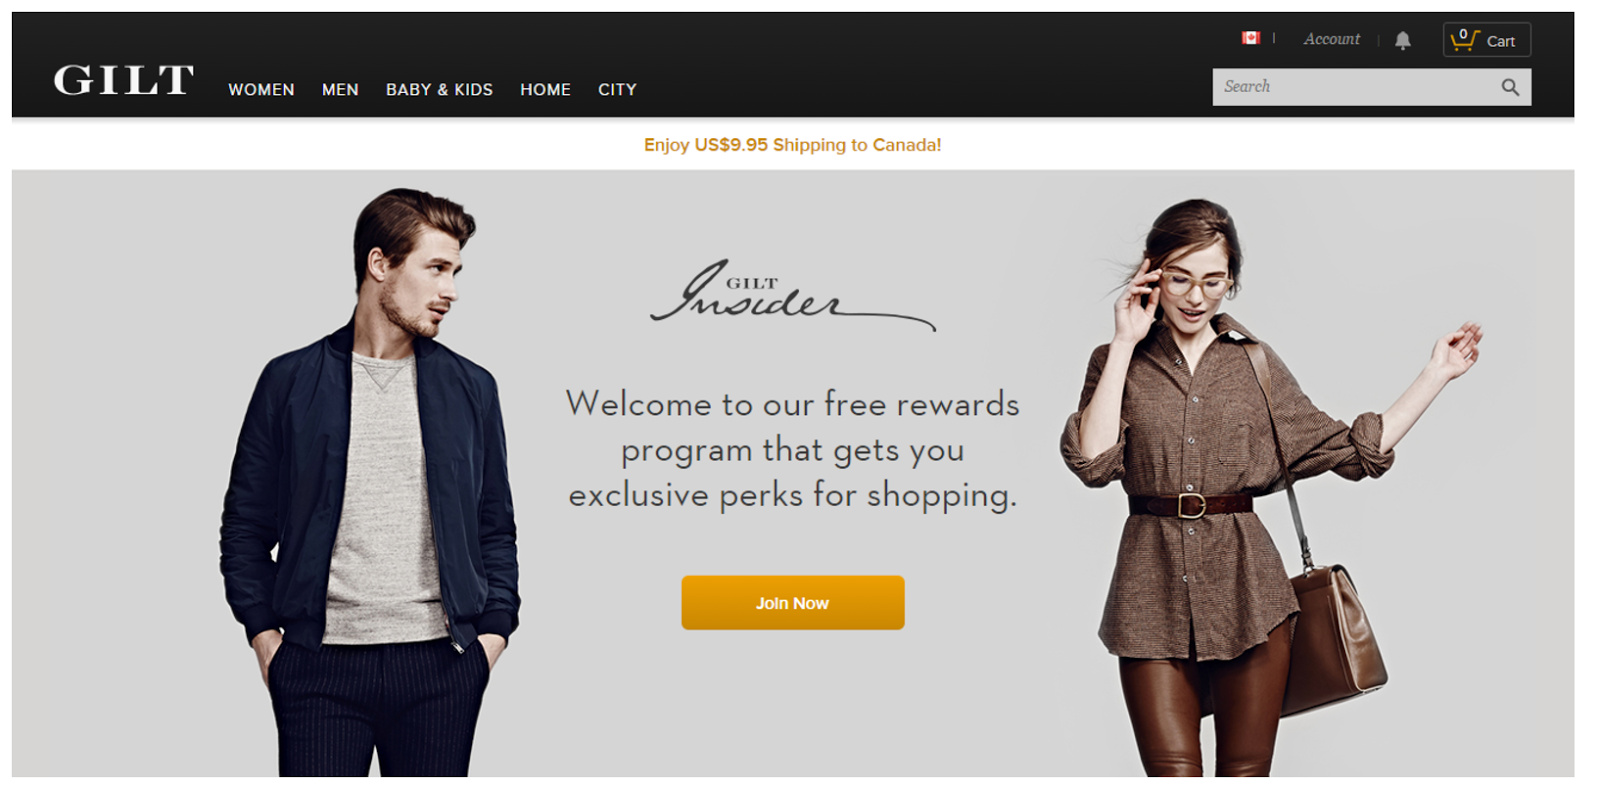 Gilt's customer loyalty program